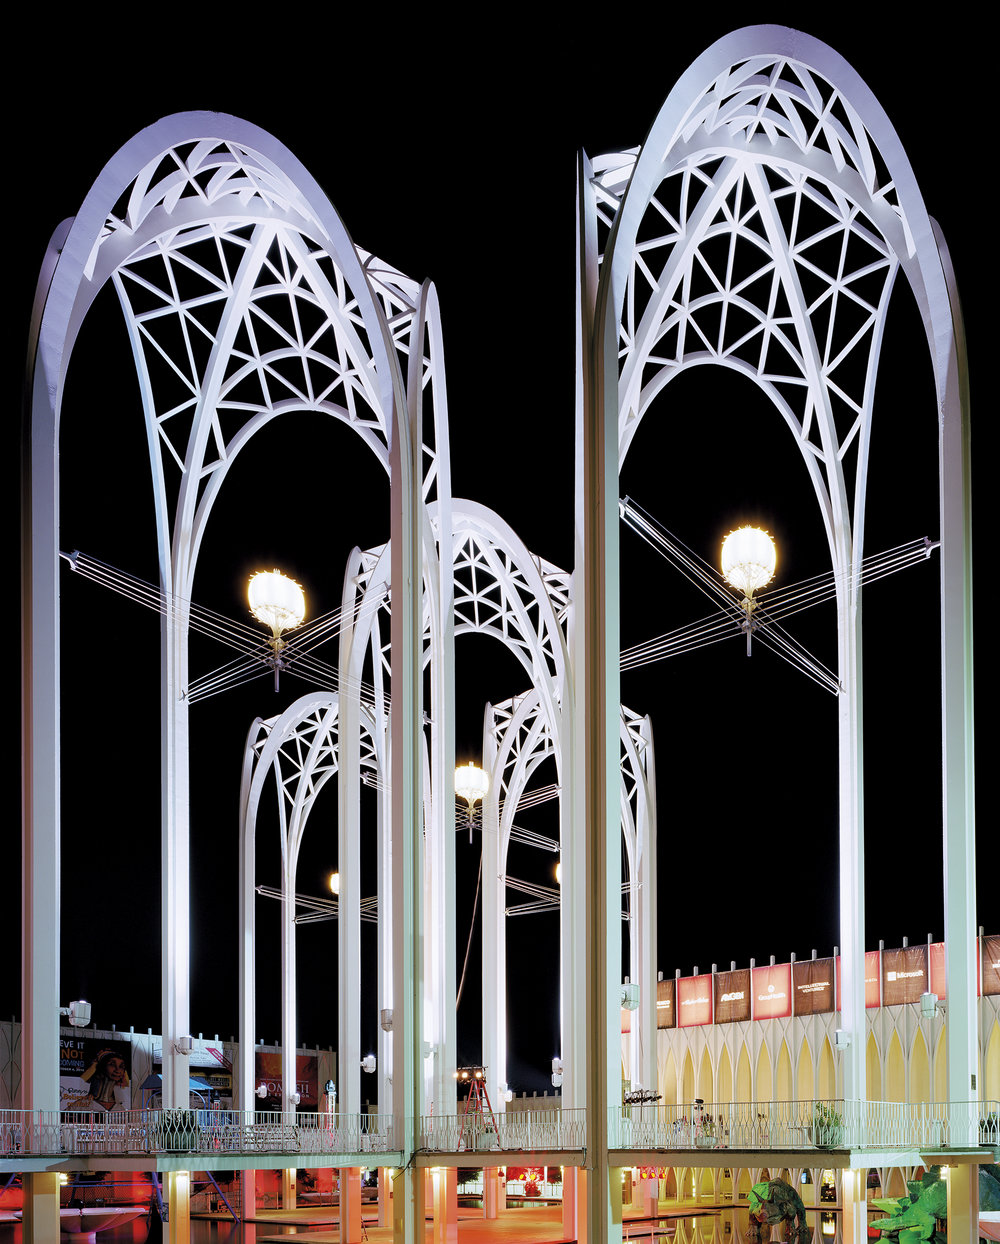 Jade_Doskow_Seattle_Arches_at_Night_072414_SEA_62_39.jpg